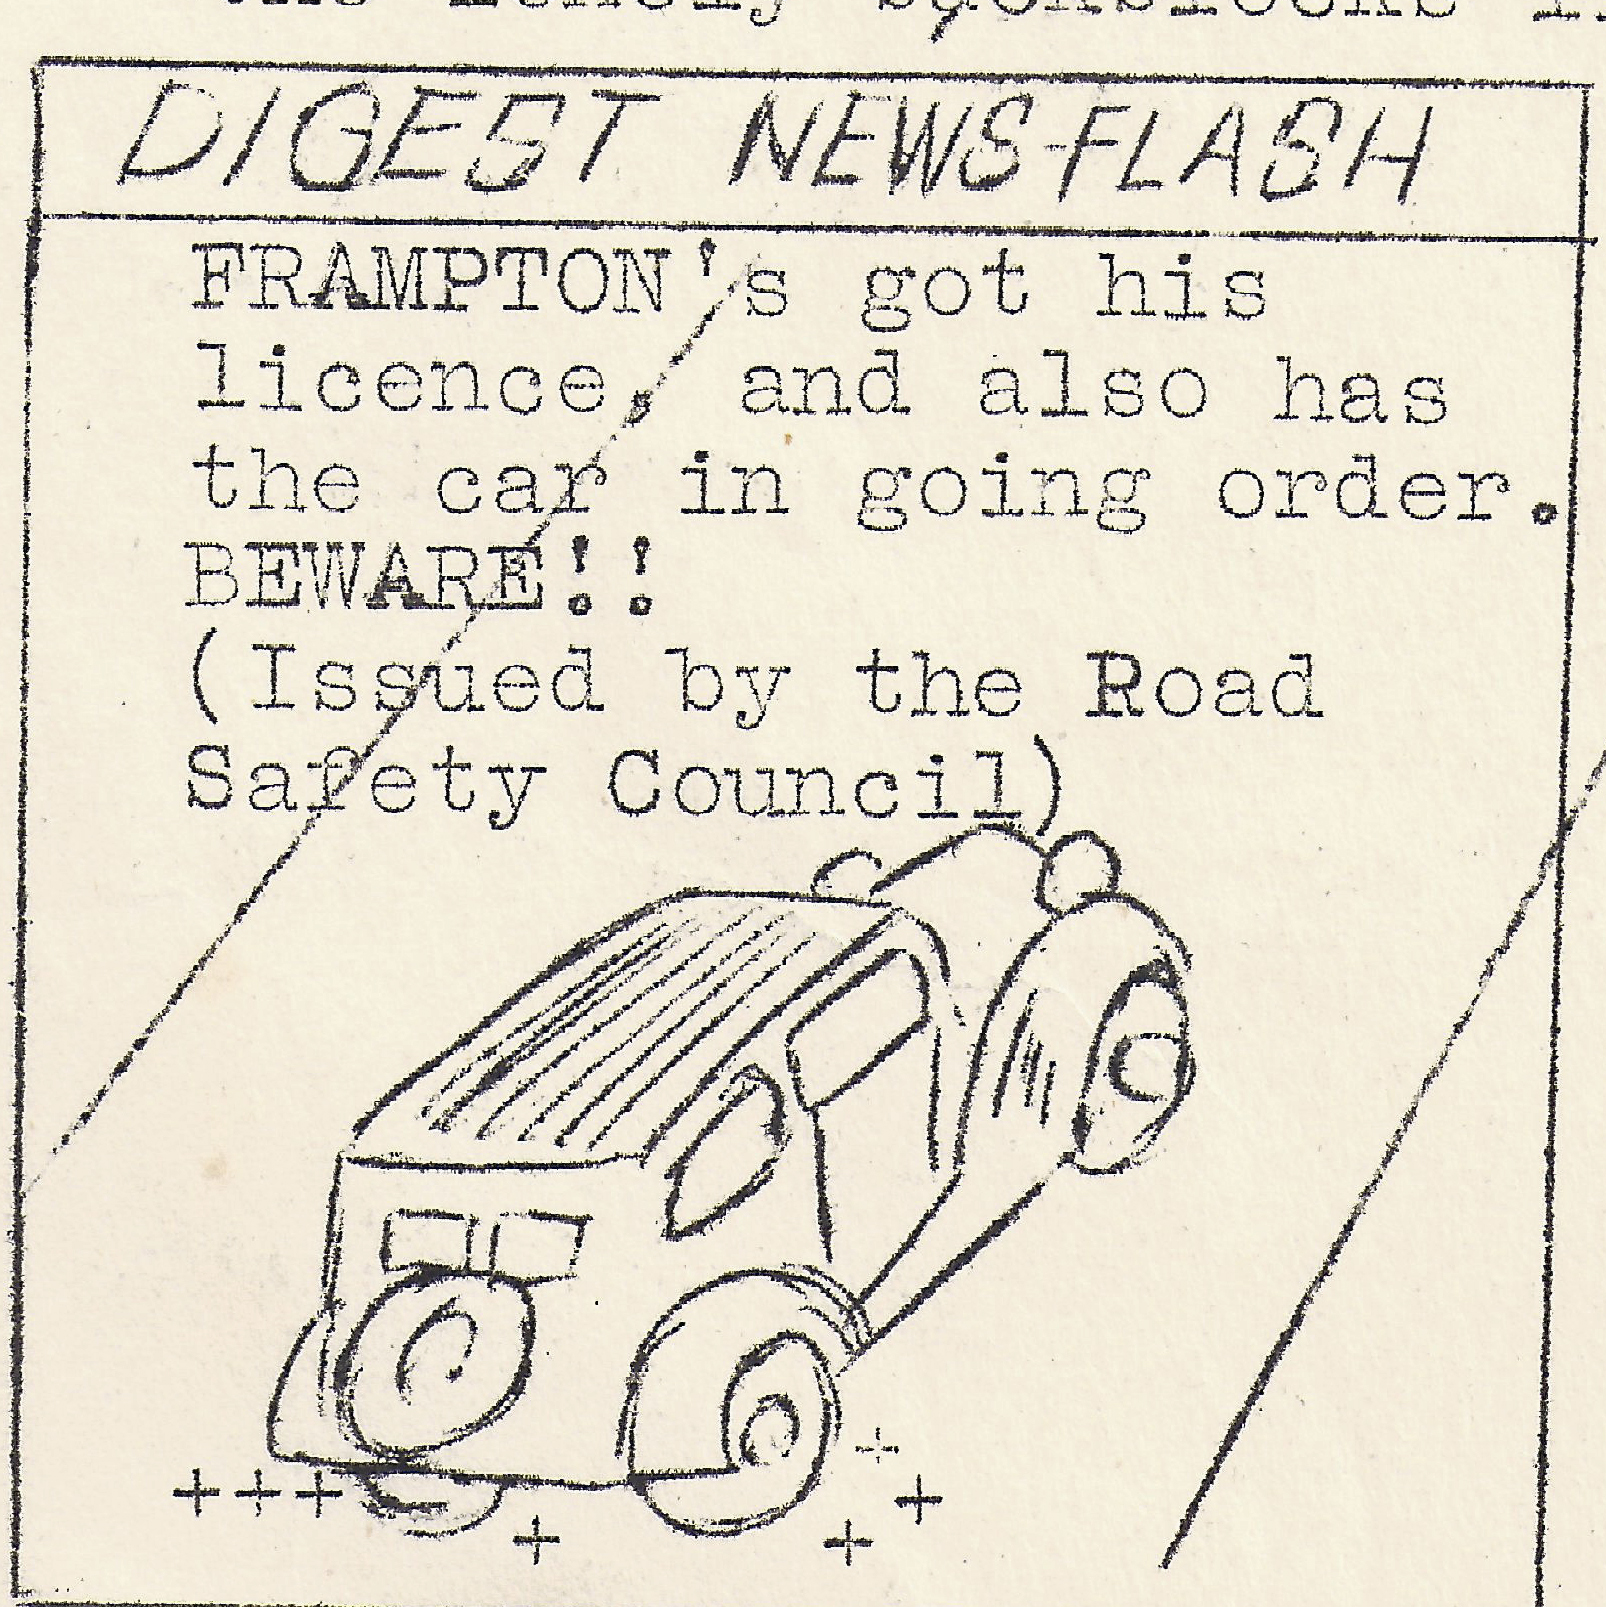 Newsflash Aug 1956